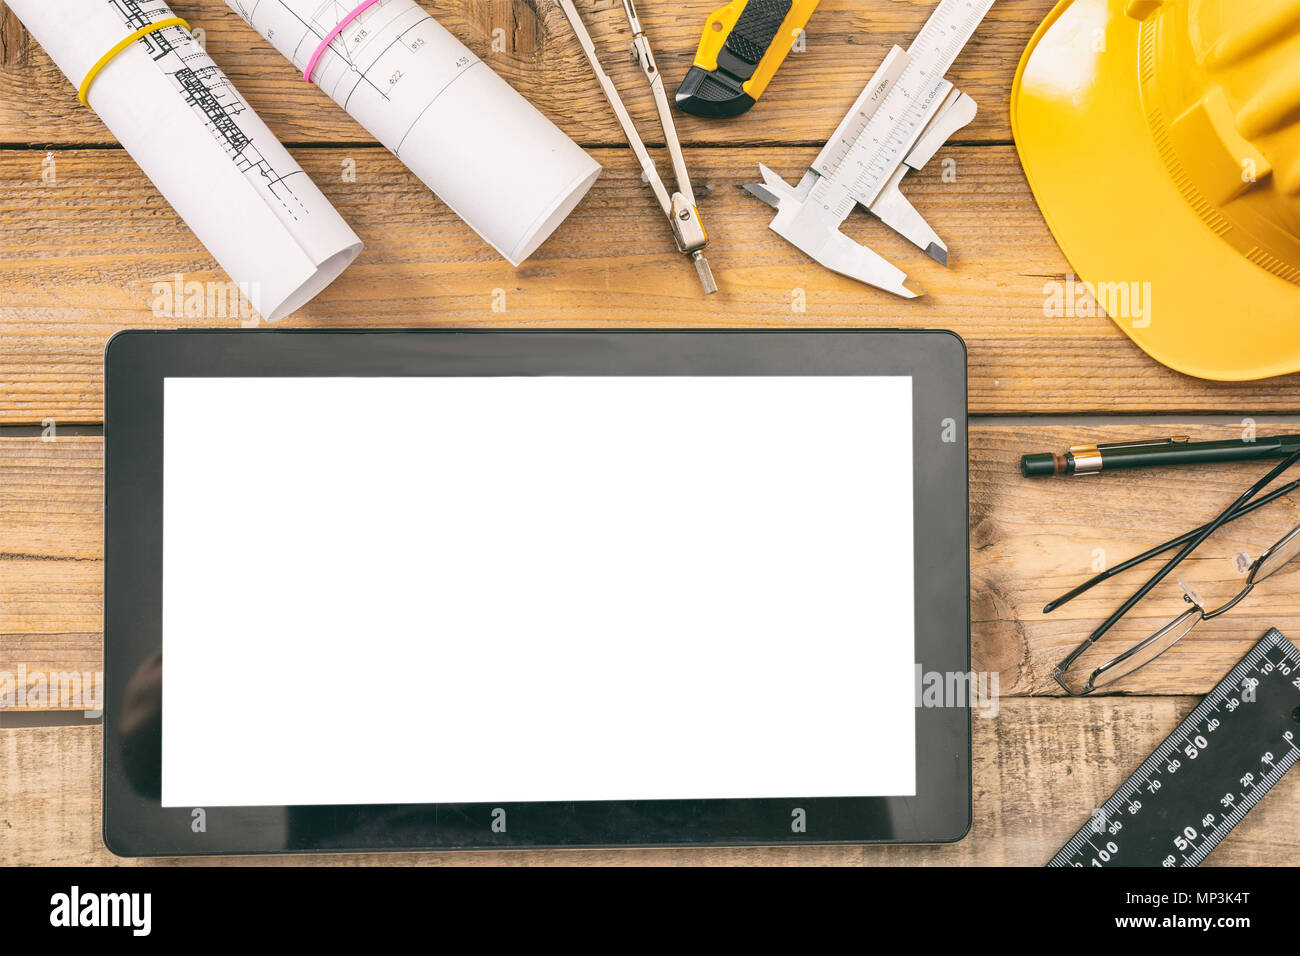 Architect workplace and technology. Tablet with white blank screen, project construction blueprints and engineering tools on wooden desk, copy space,  - Stock Image